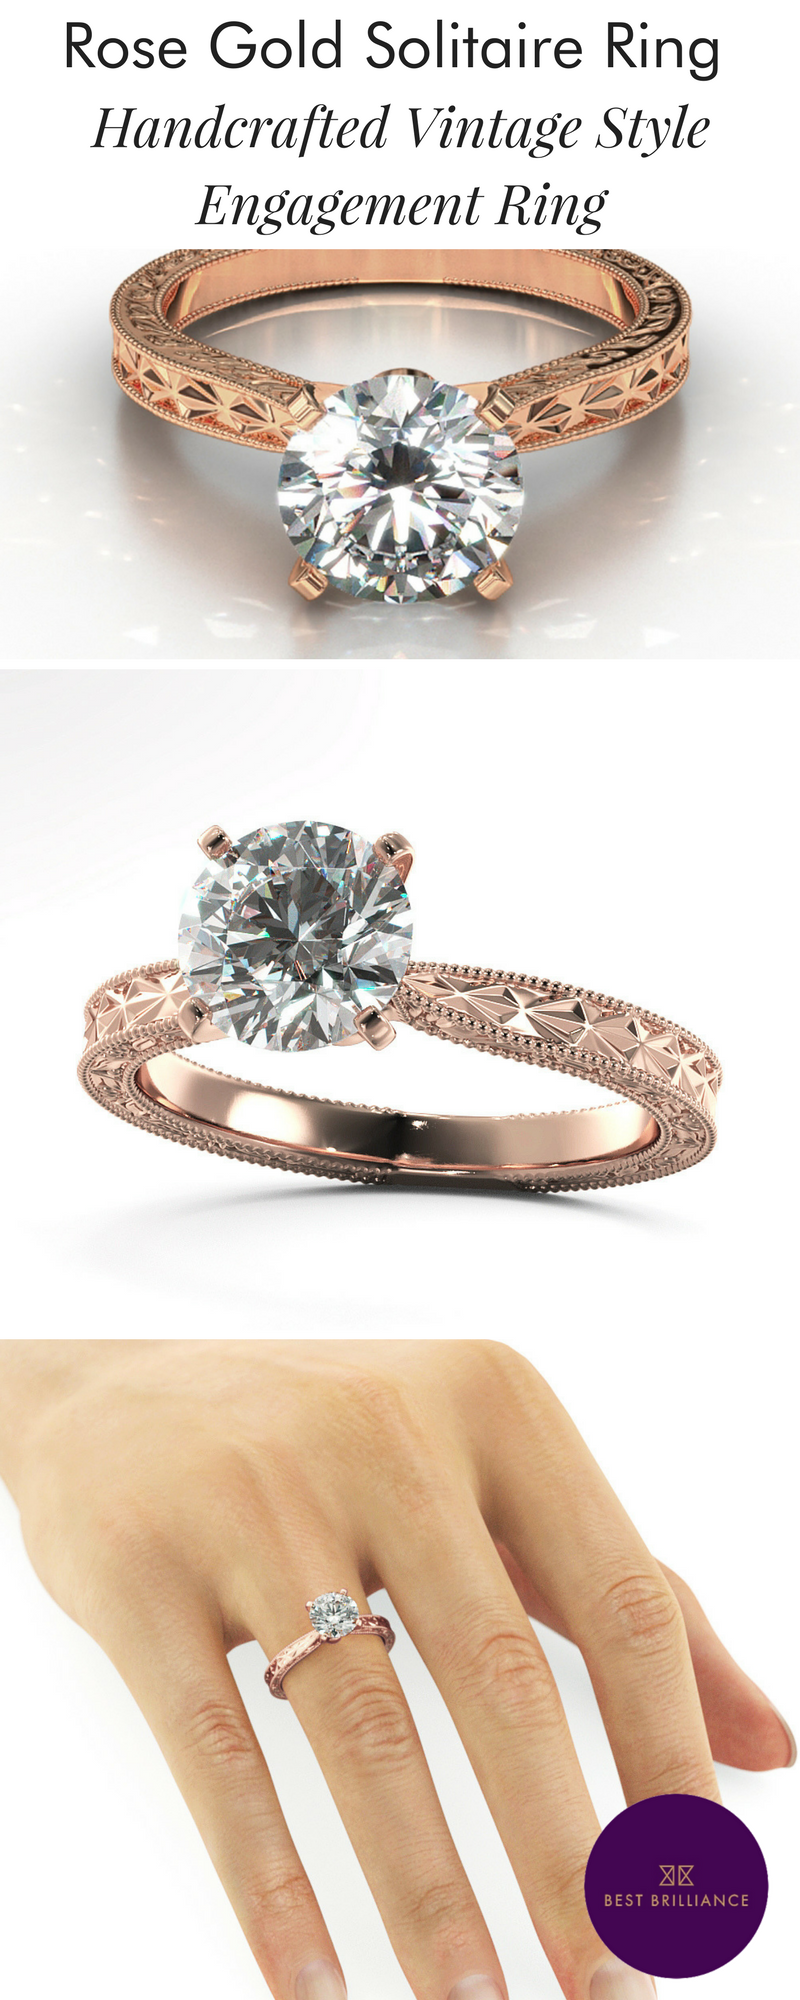 Unique handcrafted vintage style k white gold solitaire ring